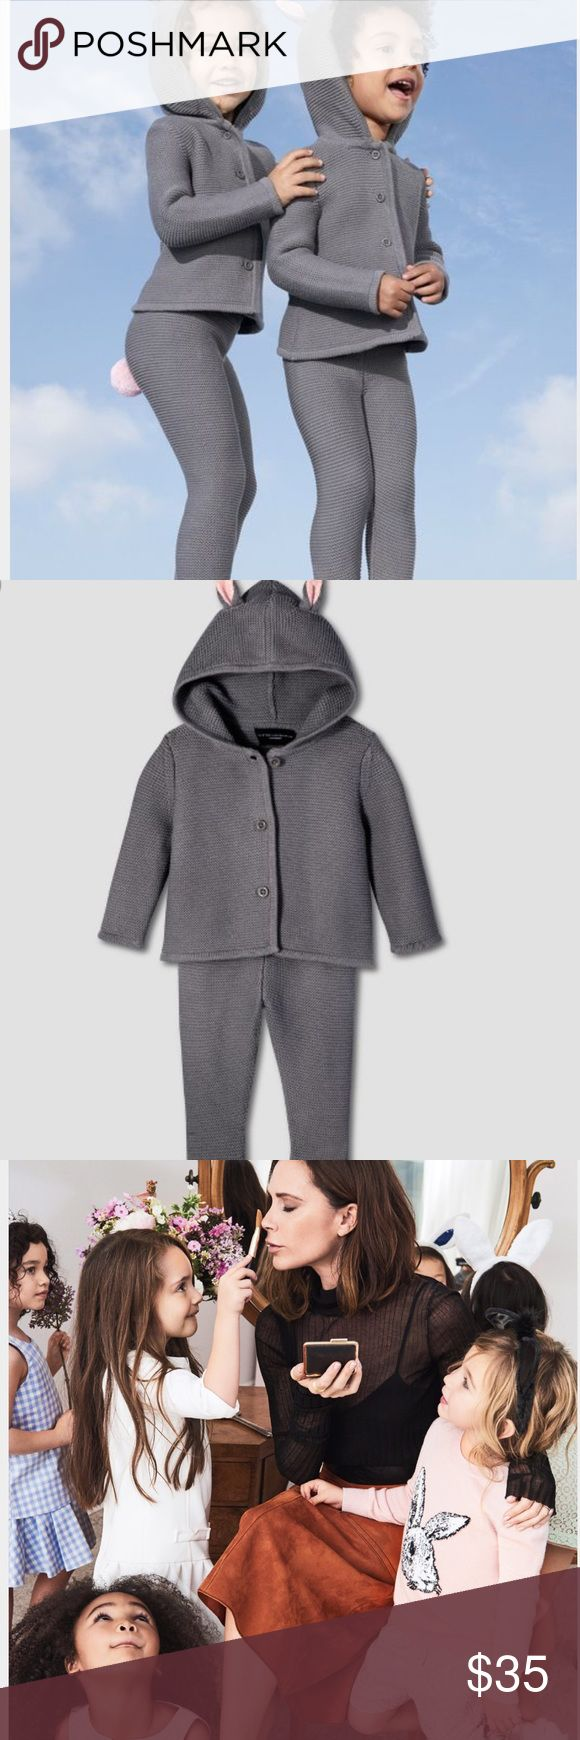 Victoria Beckham X Target bunny outfit 24 months Cute & cozy. New with tags. Sold out online & in stores. Offers are welcomed. Victoria Beckham for Target Matching Sets